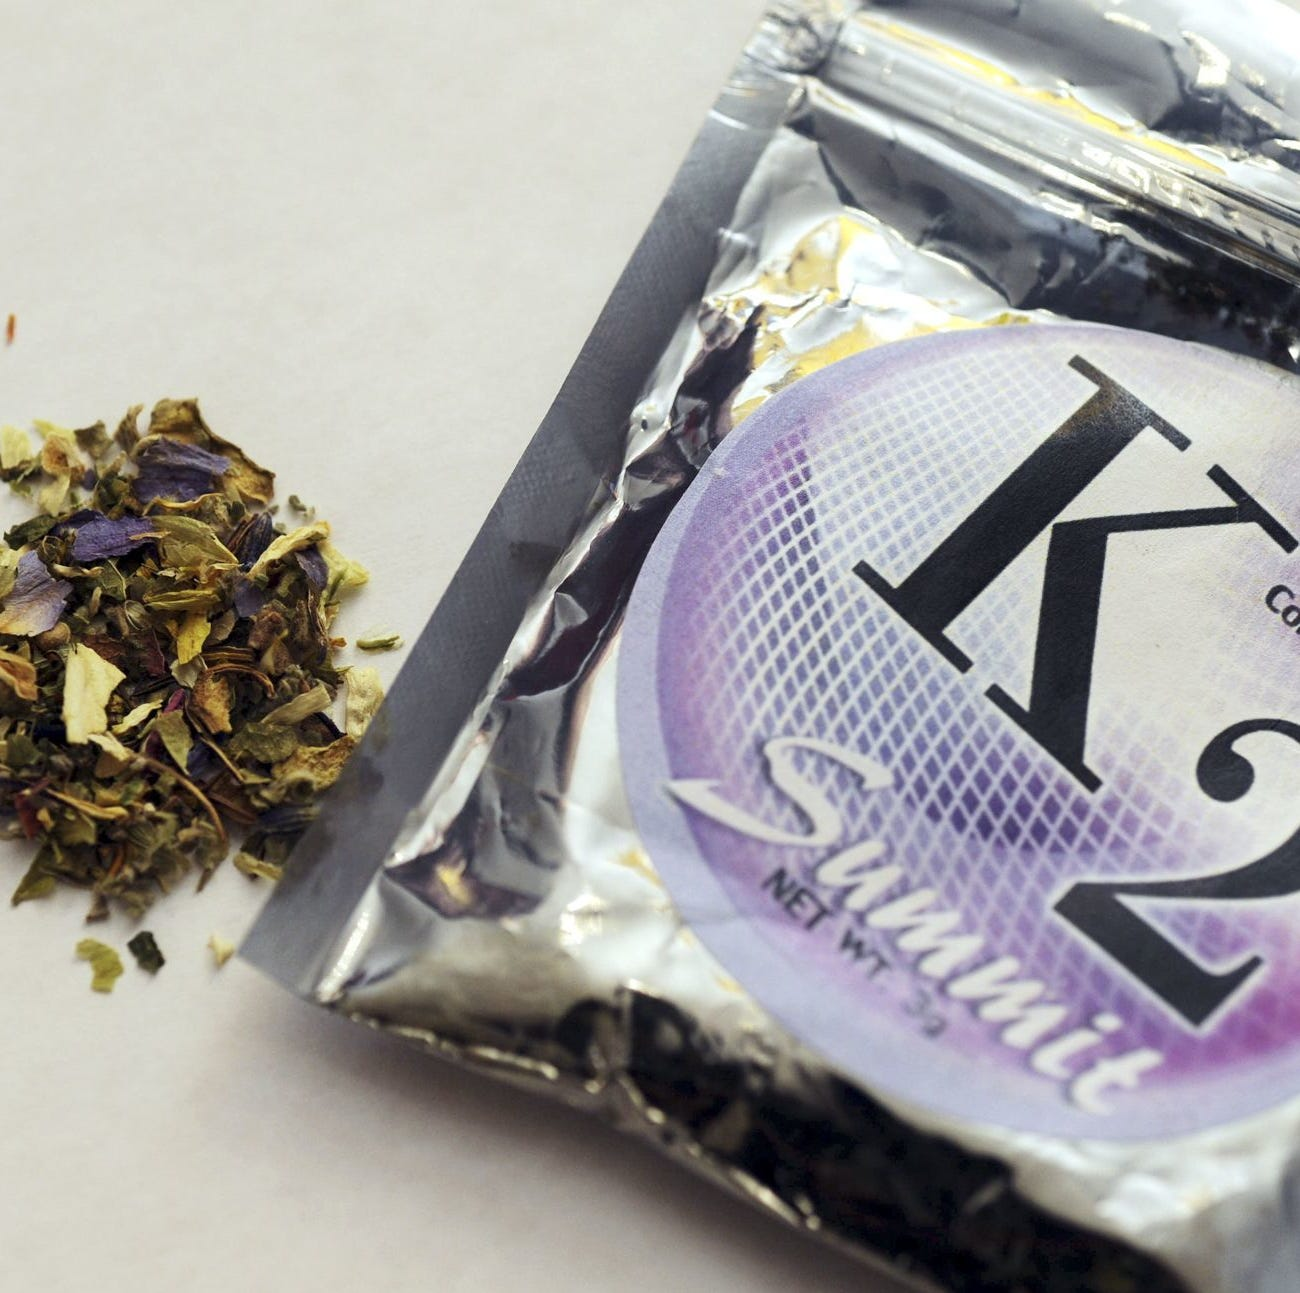 16 more Wisconsinites sickened by rat poison-laced synthetic cannabinoids in past month